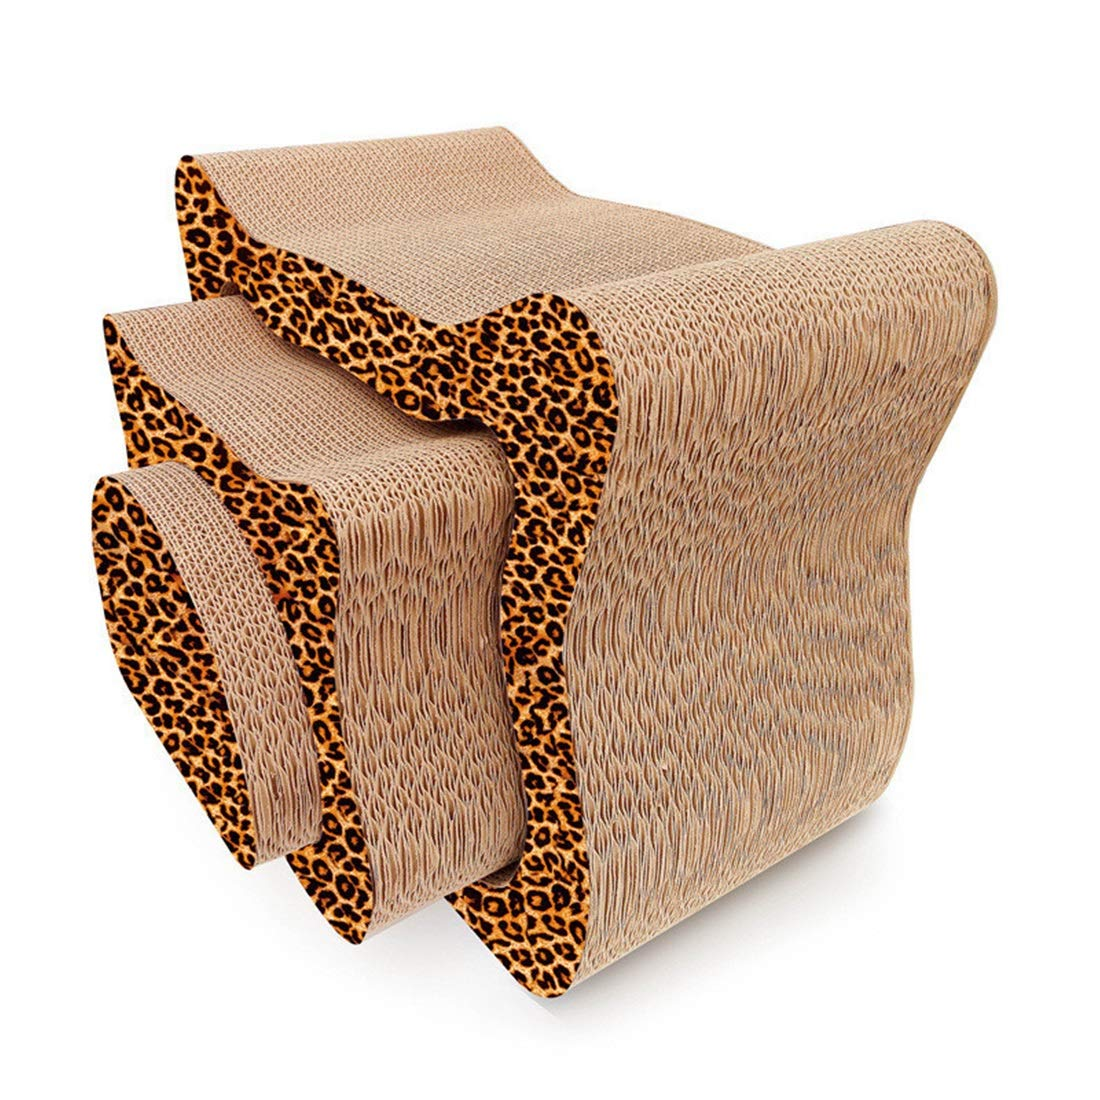 Leopard style 48X25.5X40.5cm Leopard style 48X25.5X40.5cm Hyue High-Density Corrugated Paper Cat Scratch Board Three-Piece Set Cat Toy Claw Board Save Your Furniture (color   Leopard Style, Size   48X25.5X40.5cm)